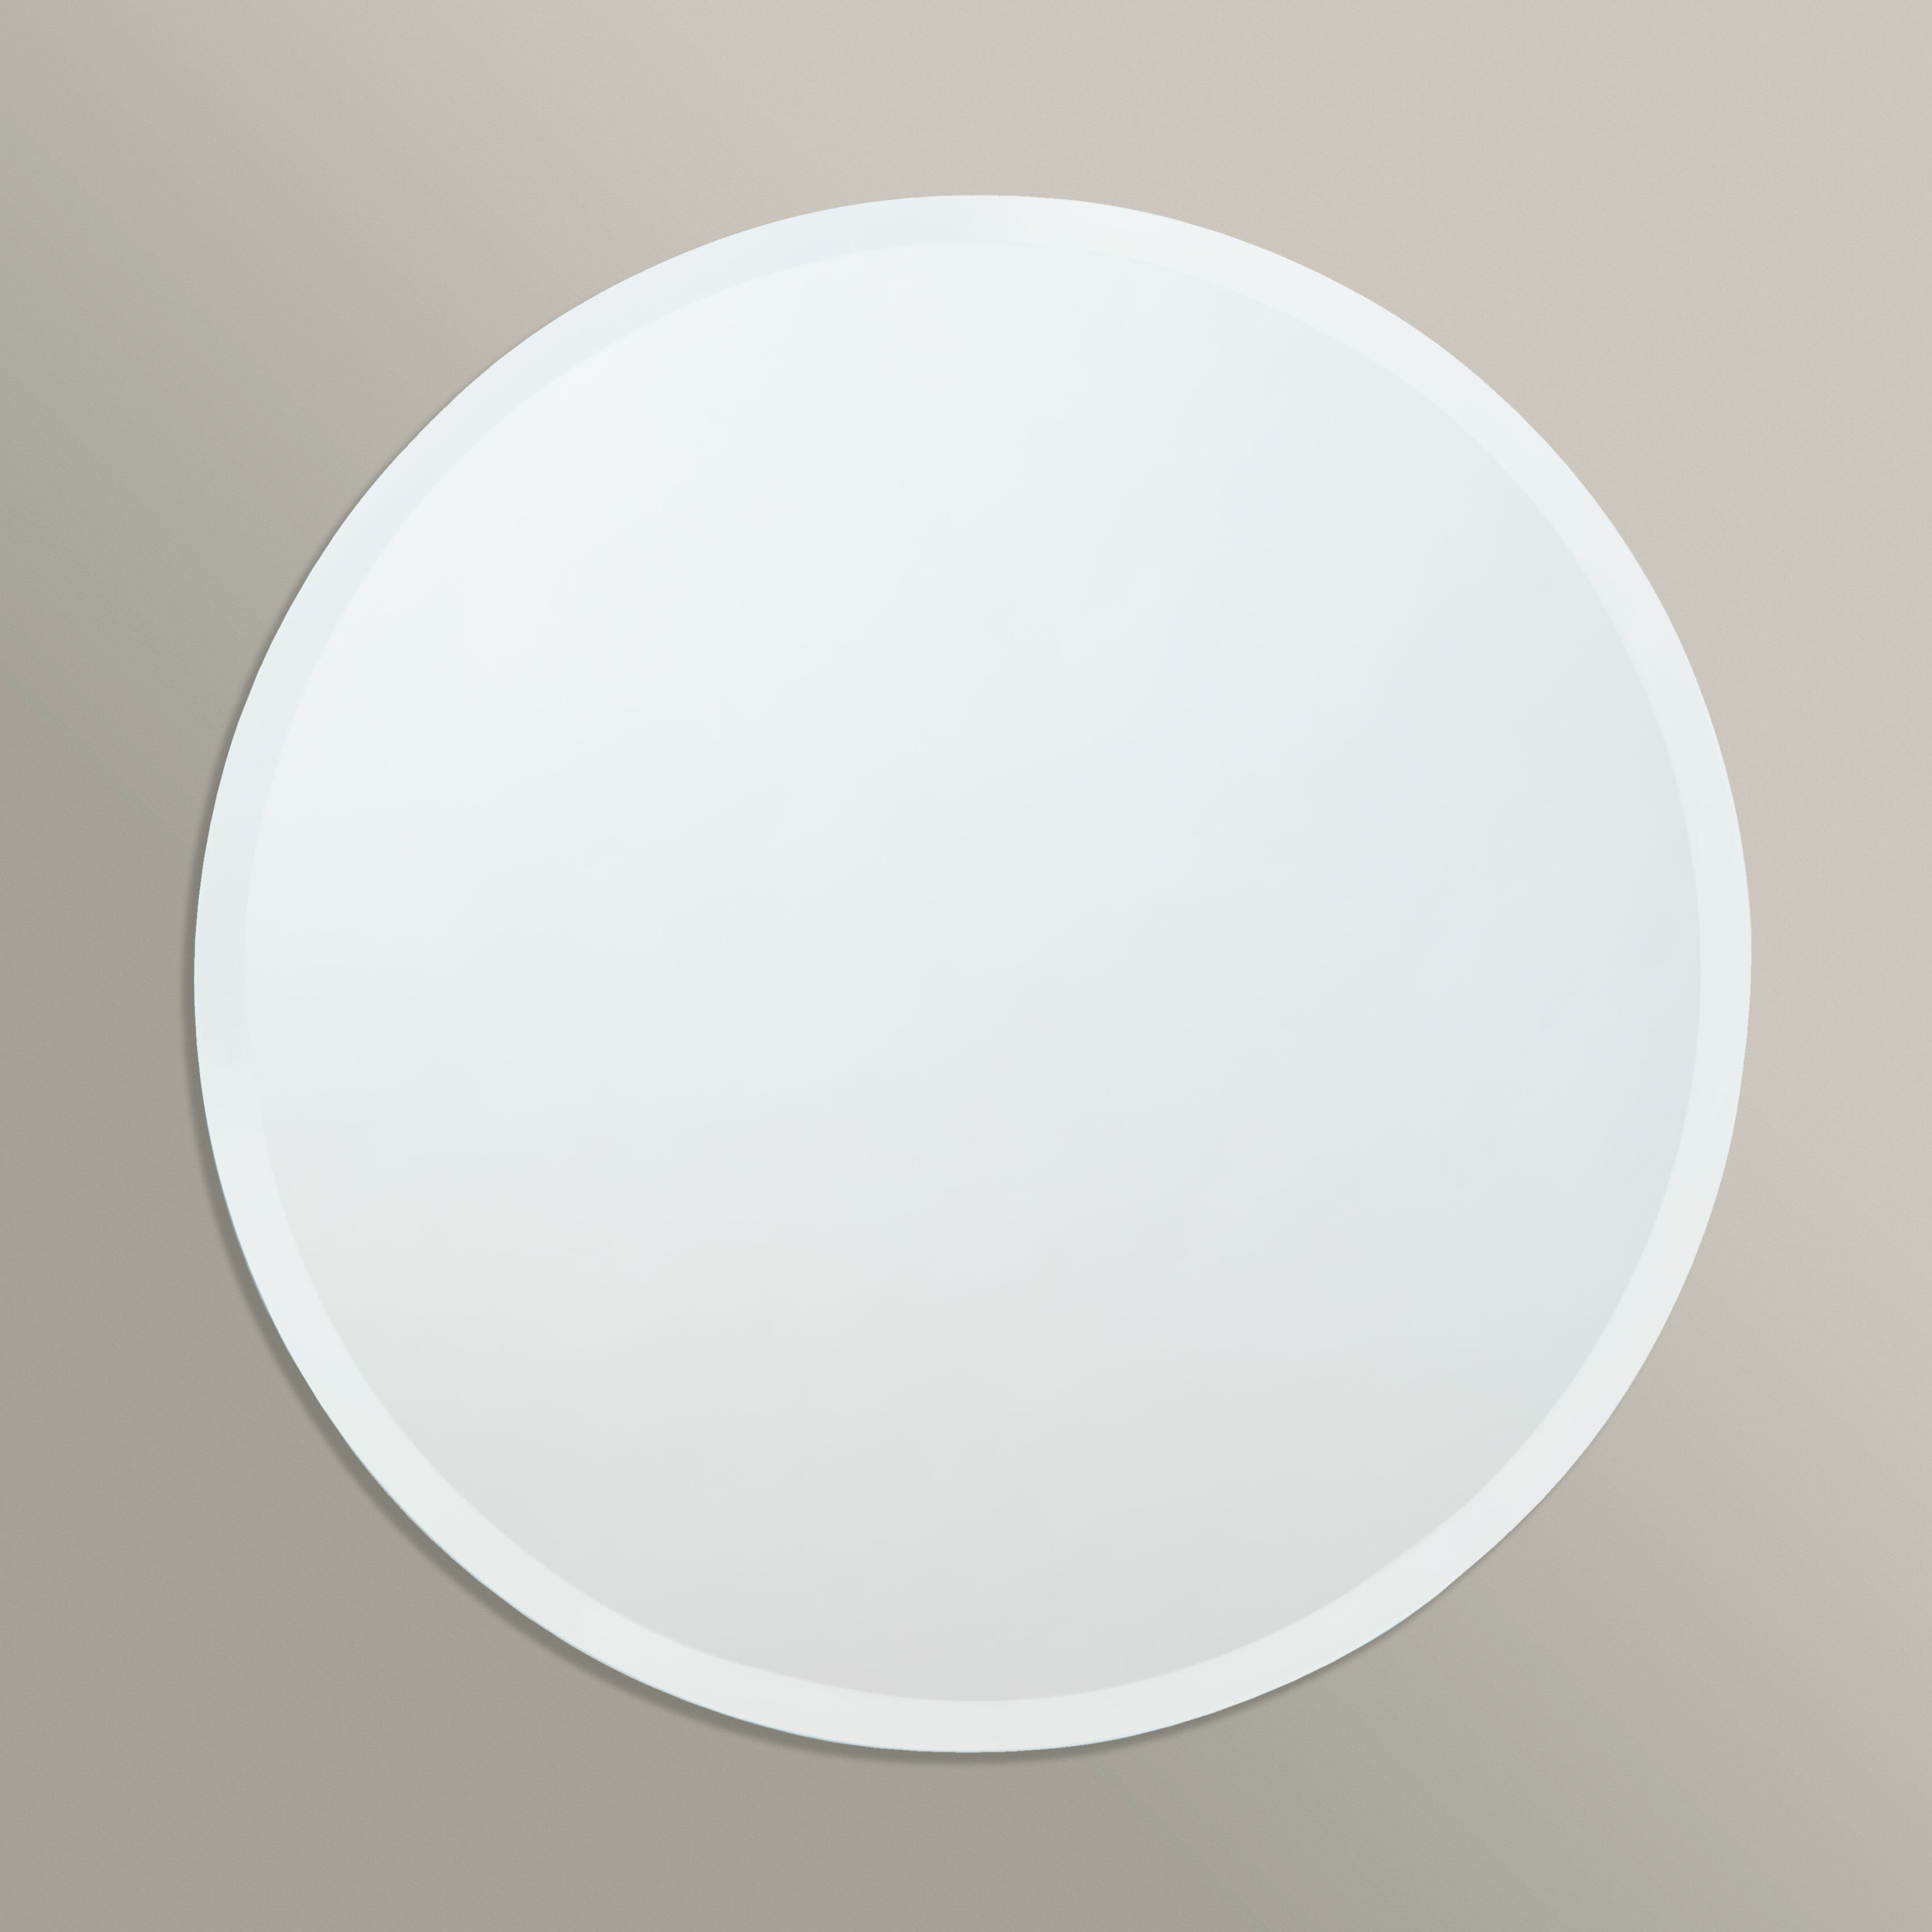 Famous Gaunts Earthcott Modern & Contemporary Beveled Accent Mirrors For Printers Row Contemporary Beveled Edge Round Wall Mirror (View 13 of 20)